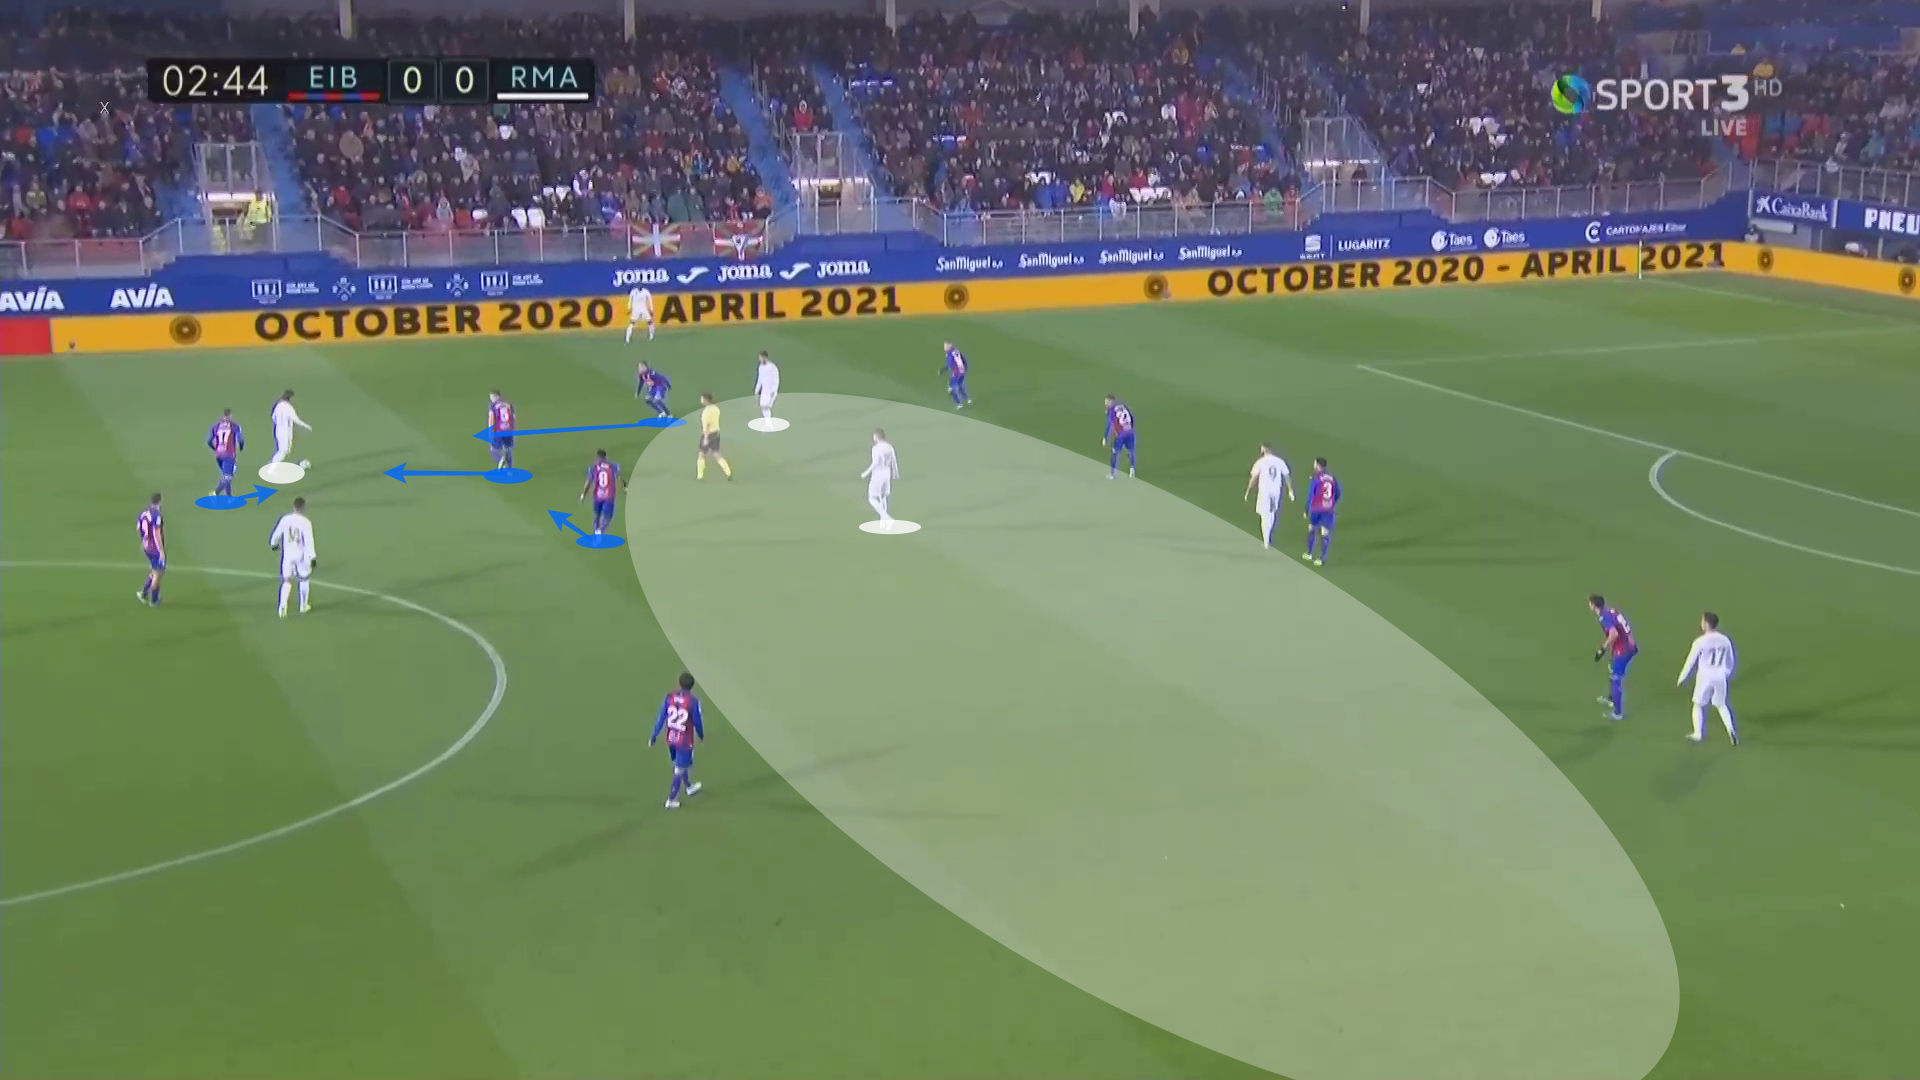 La Liga 2019/20: Eibar vs Real Madrid - tactical analysis tactics